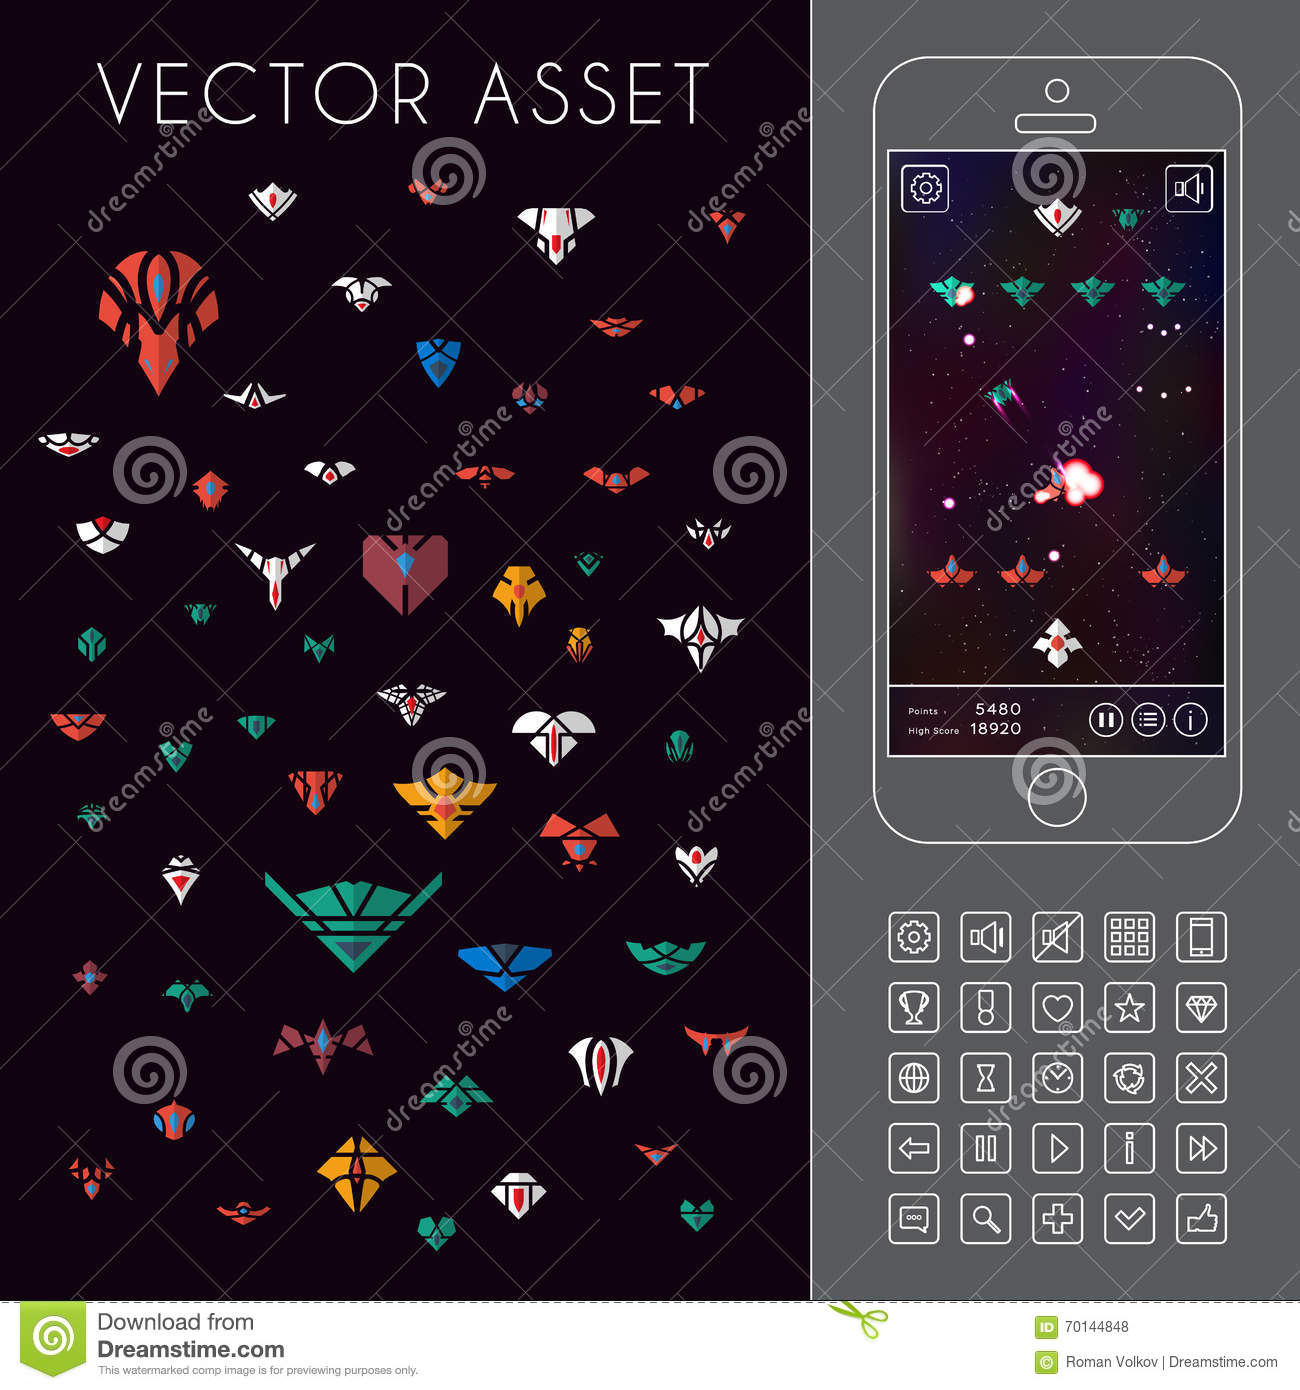 Space Arcade Game  Vector Asset Stock Vector - Illustration of